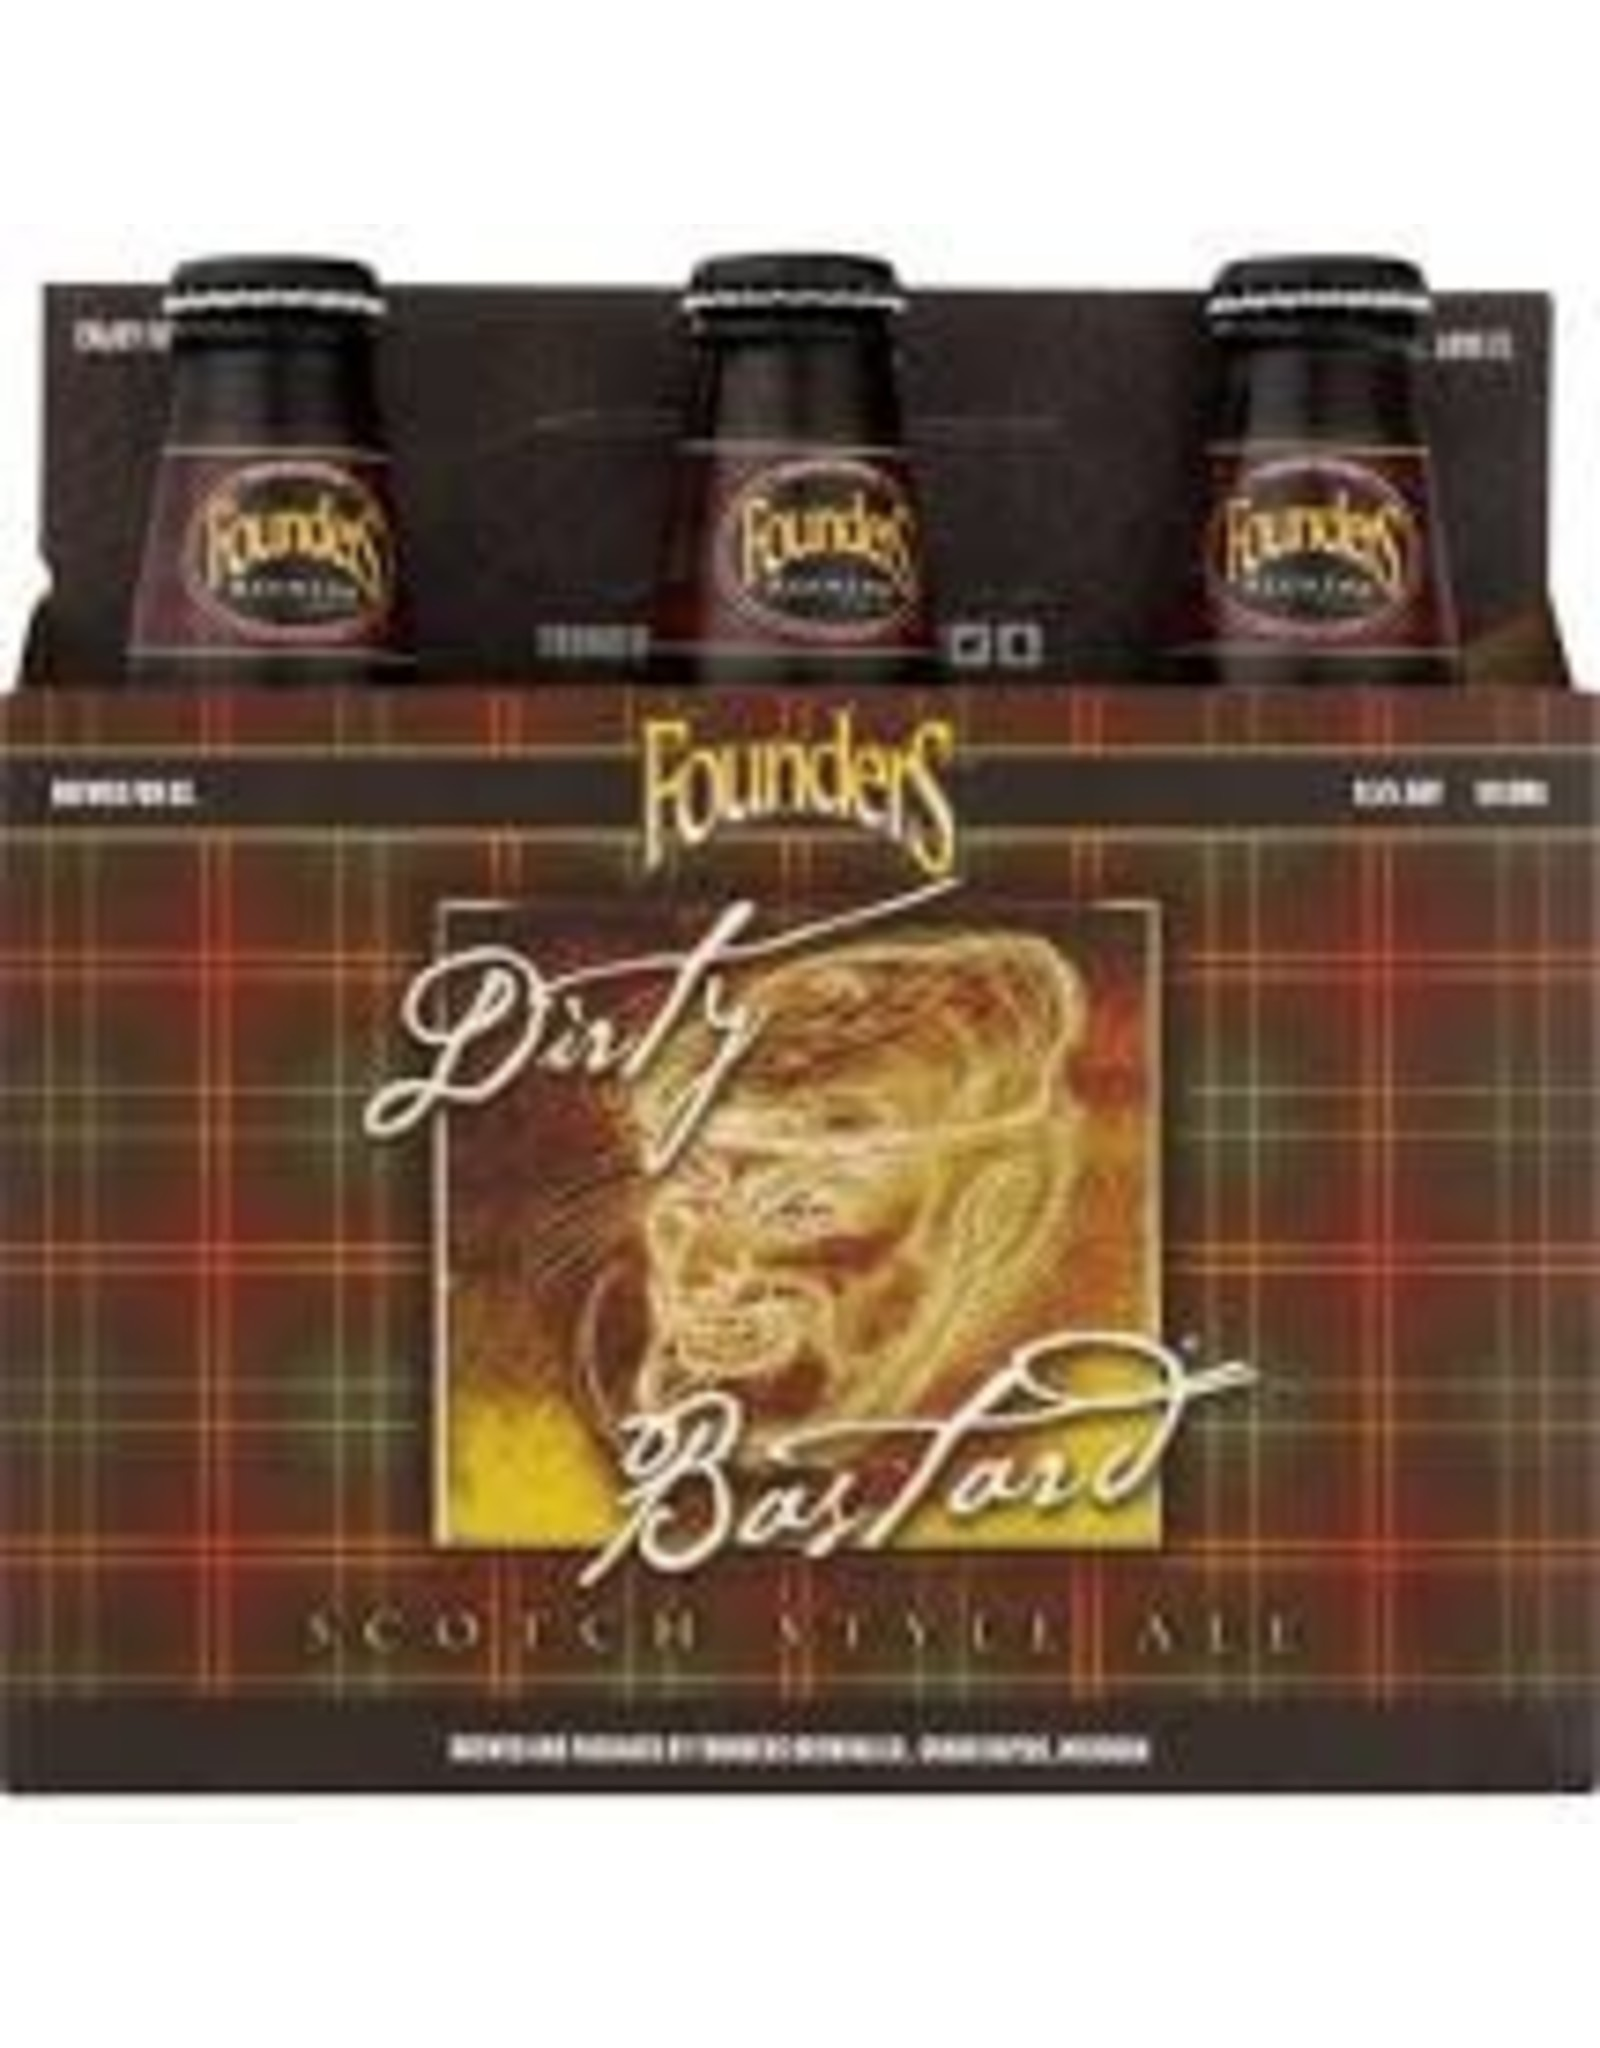 Founders Founder's Dirty Bastard 6pk bottle